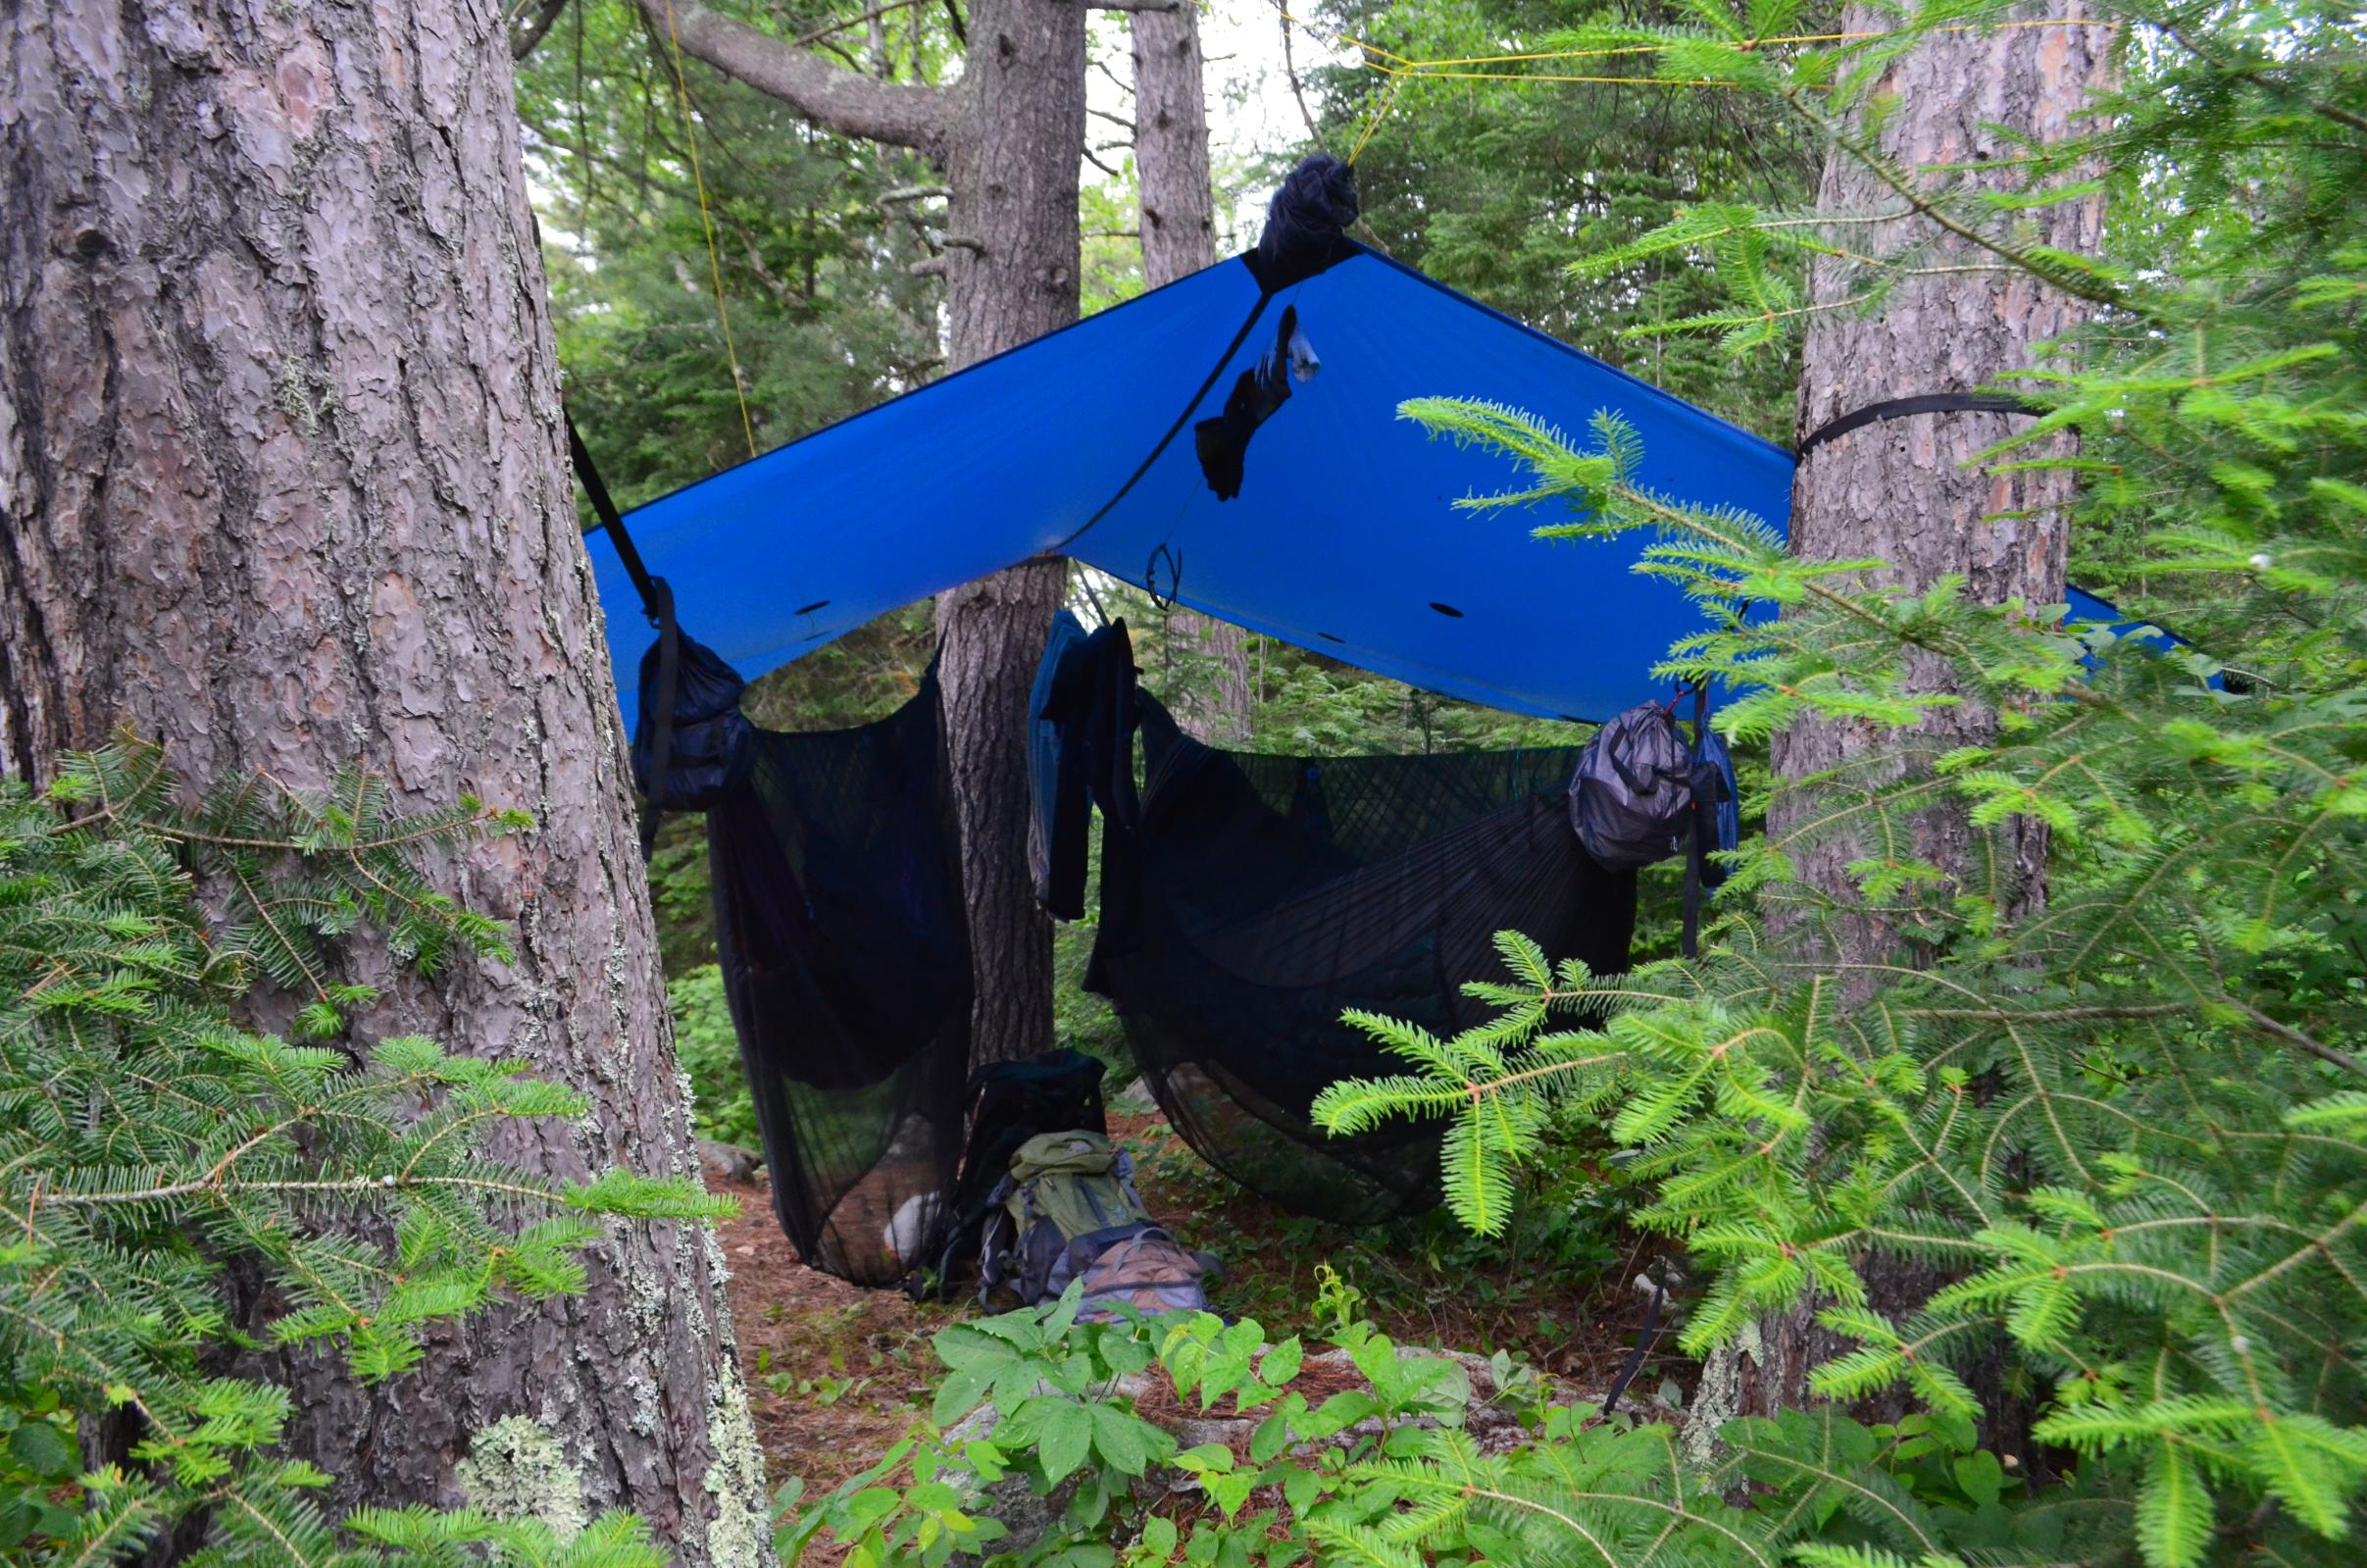 Bwca The Elusive Double Hang Boundary Waters Private